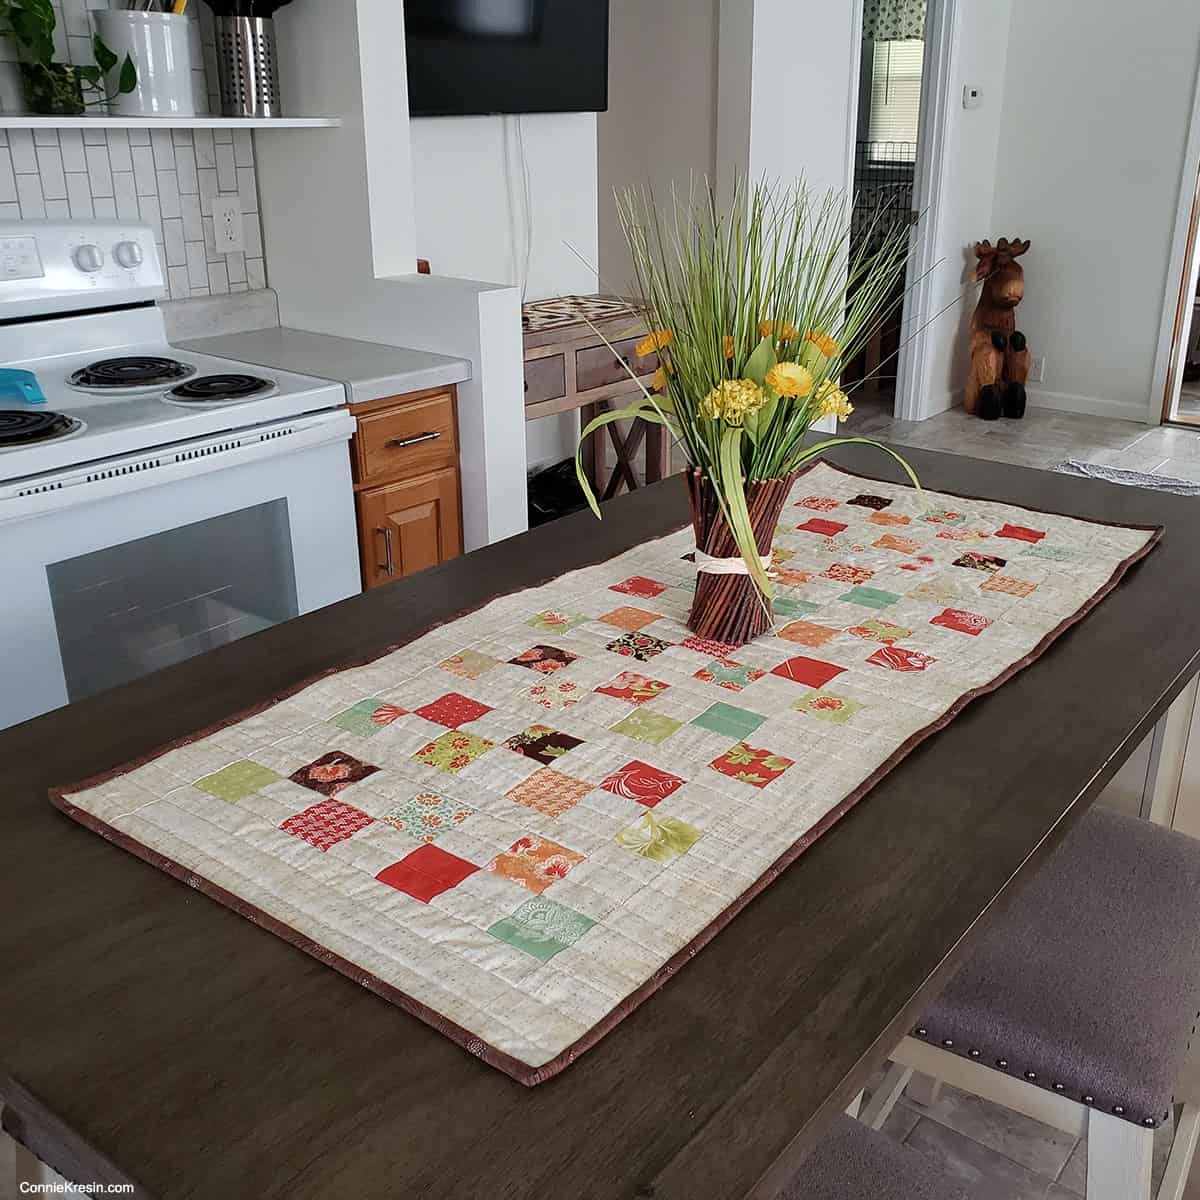 quilted table runner on kitchen table